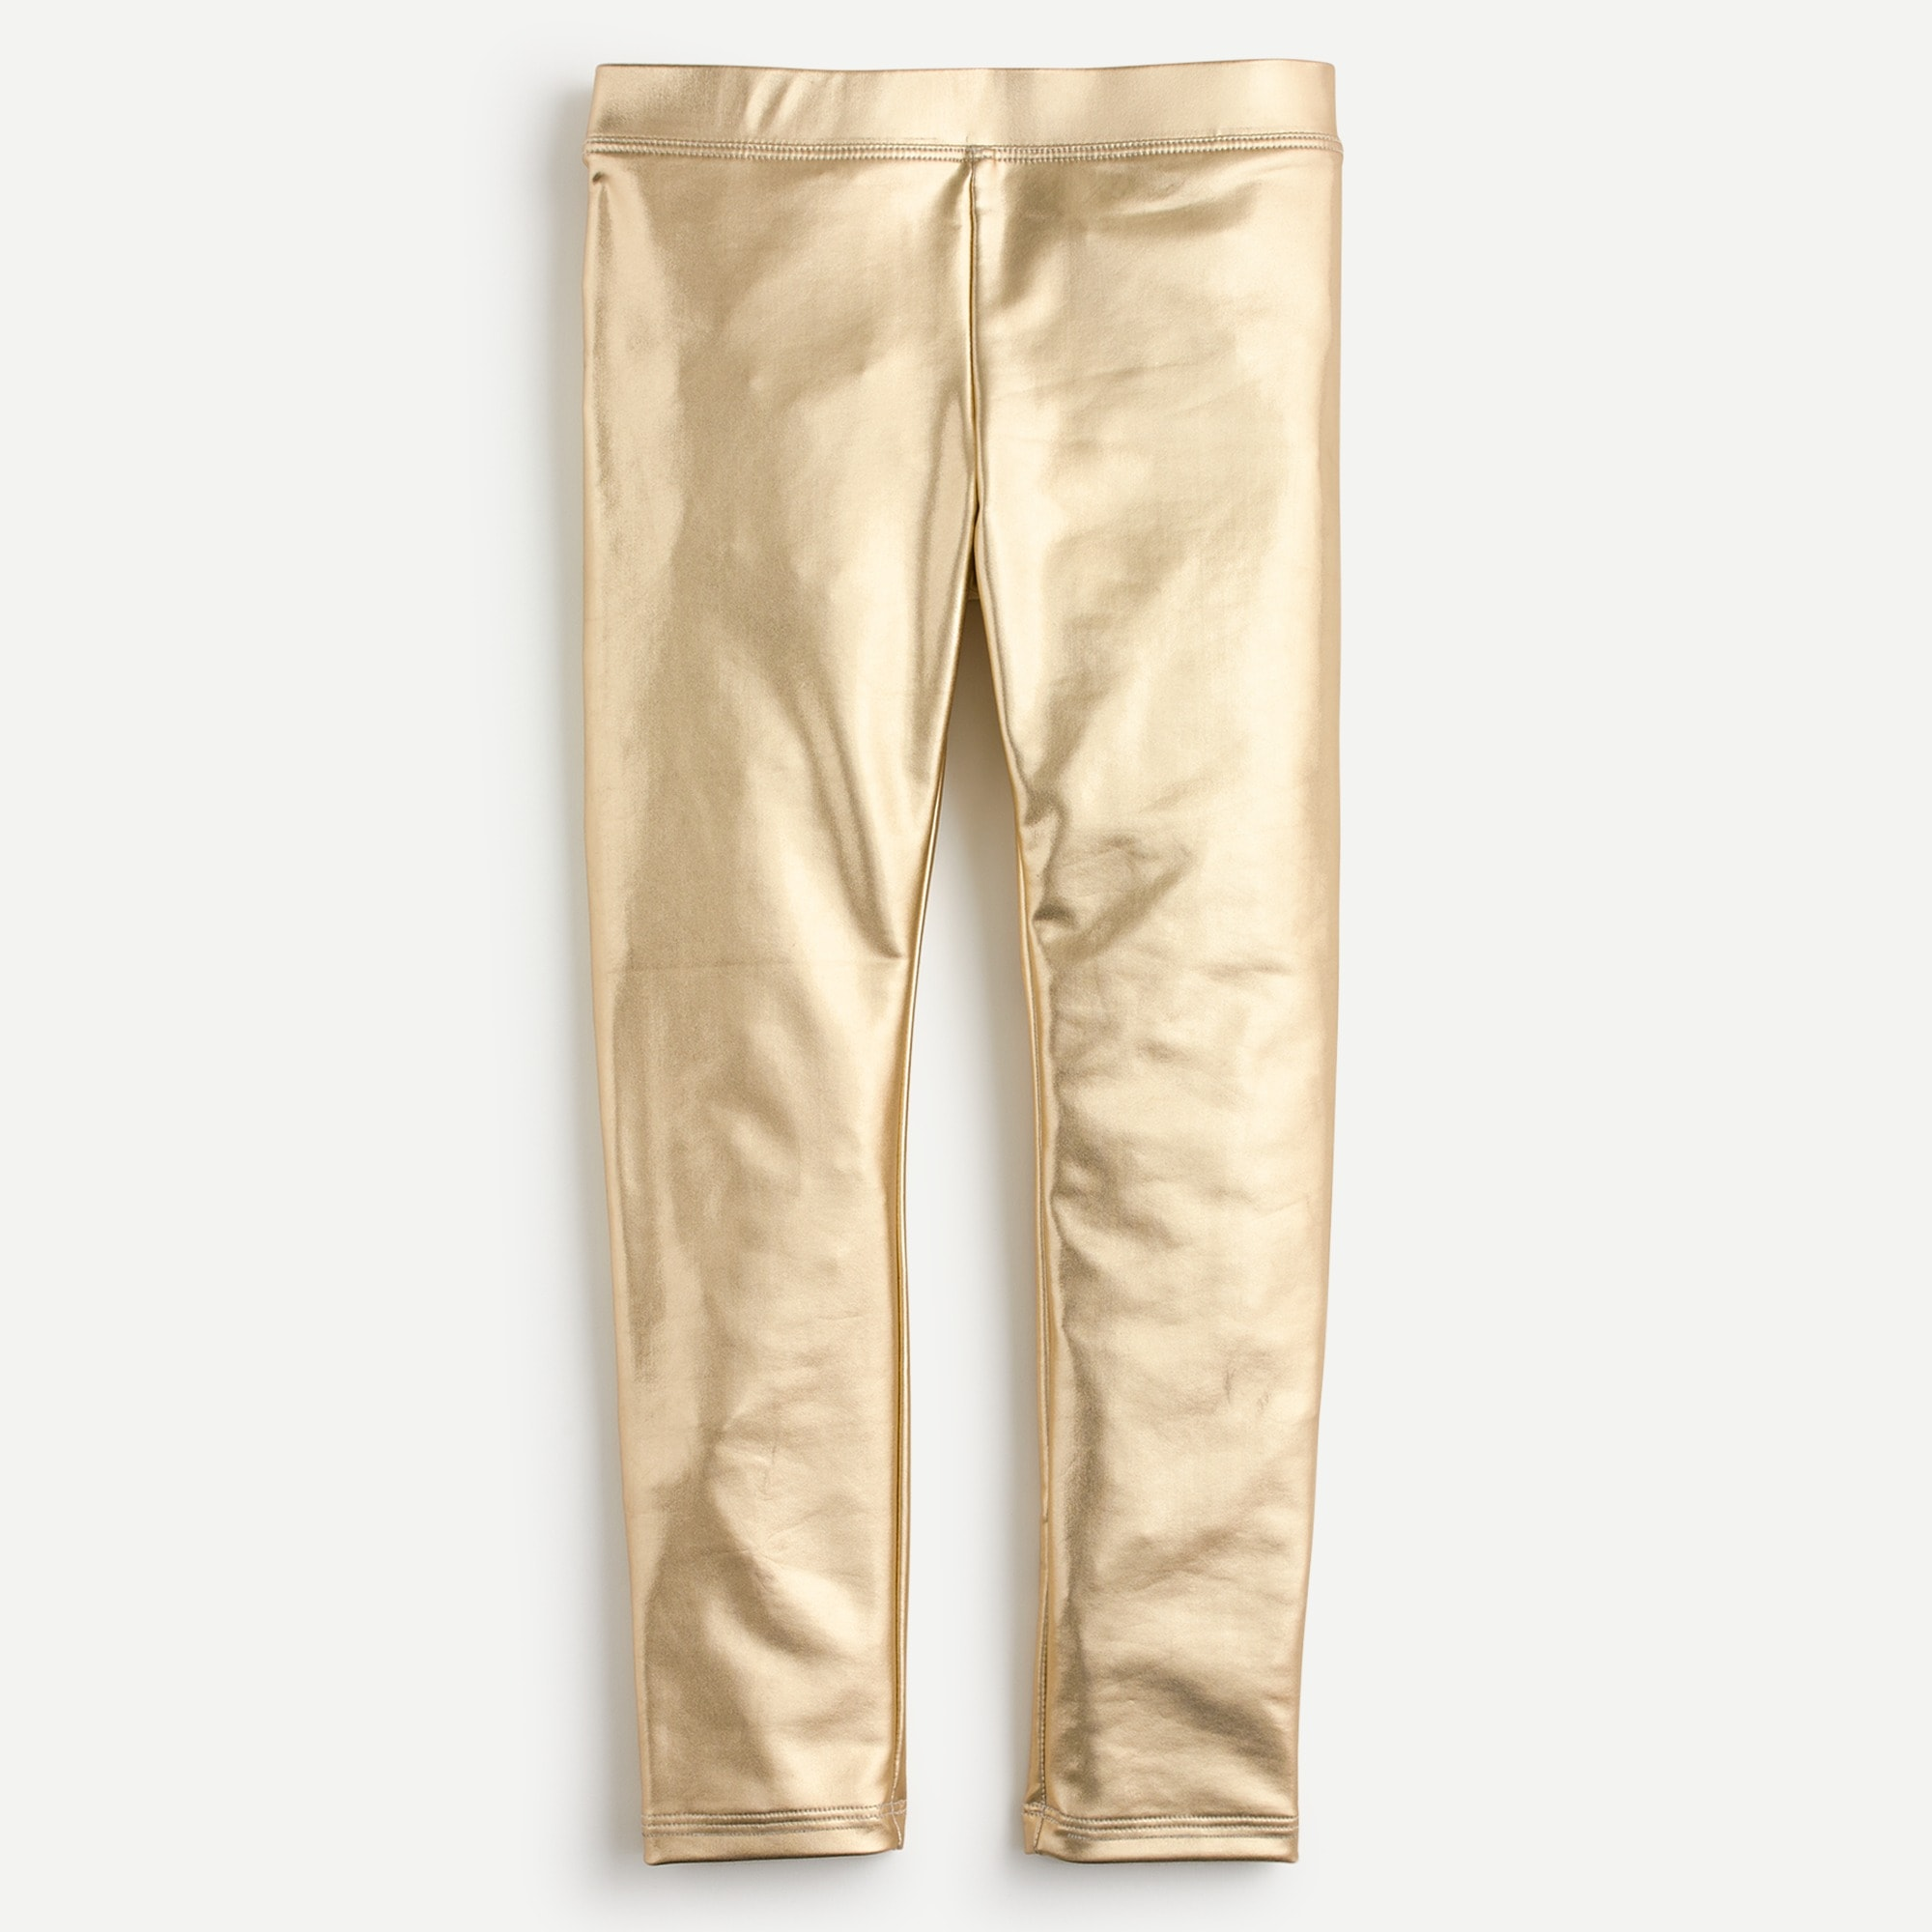 girls Girls' everyday leggings in metallic